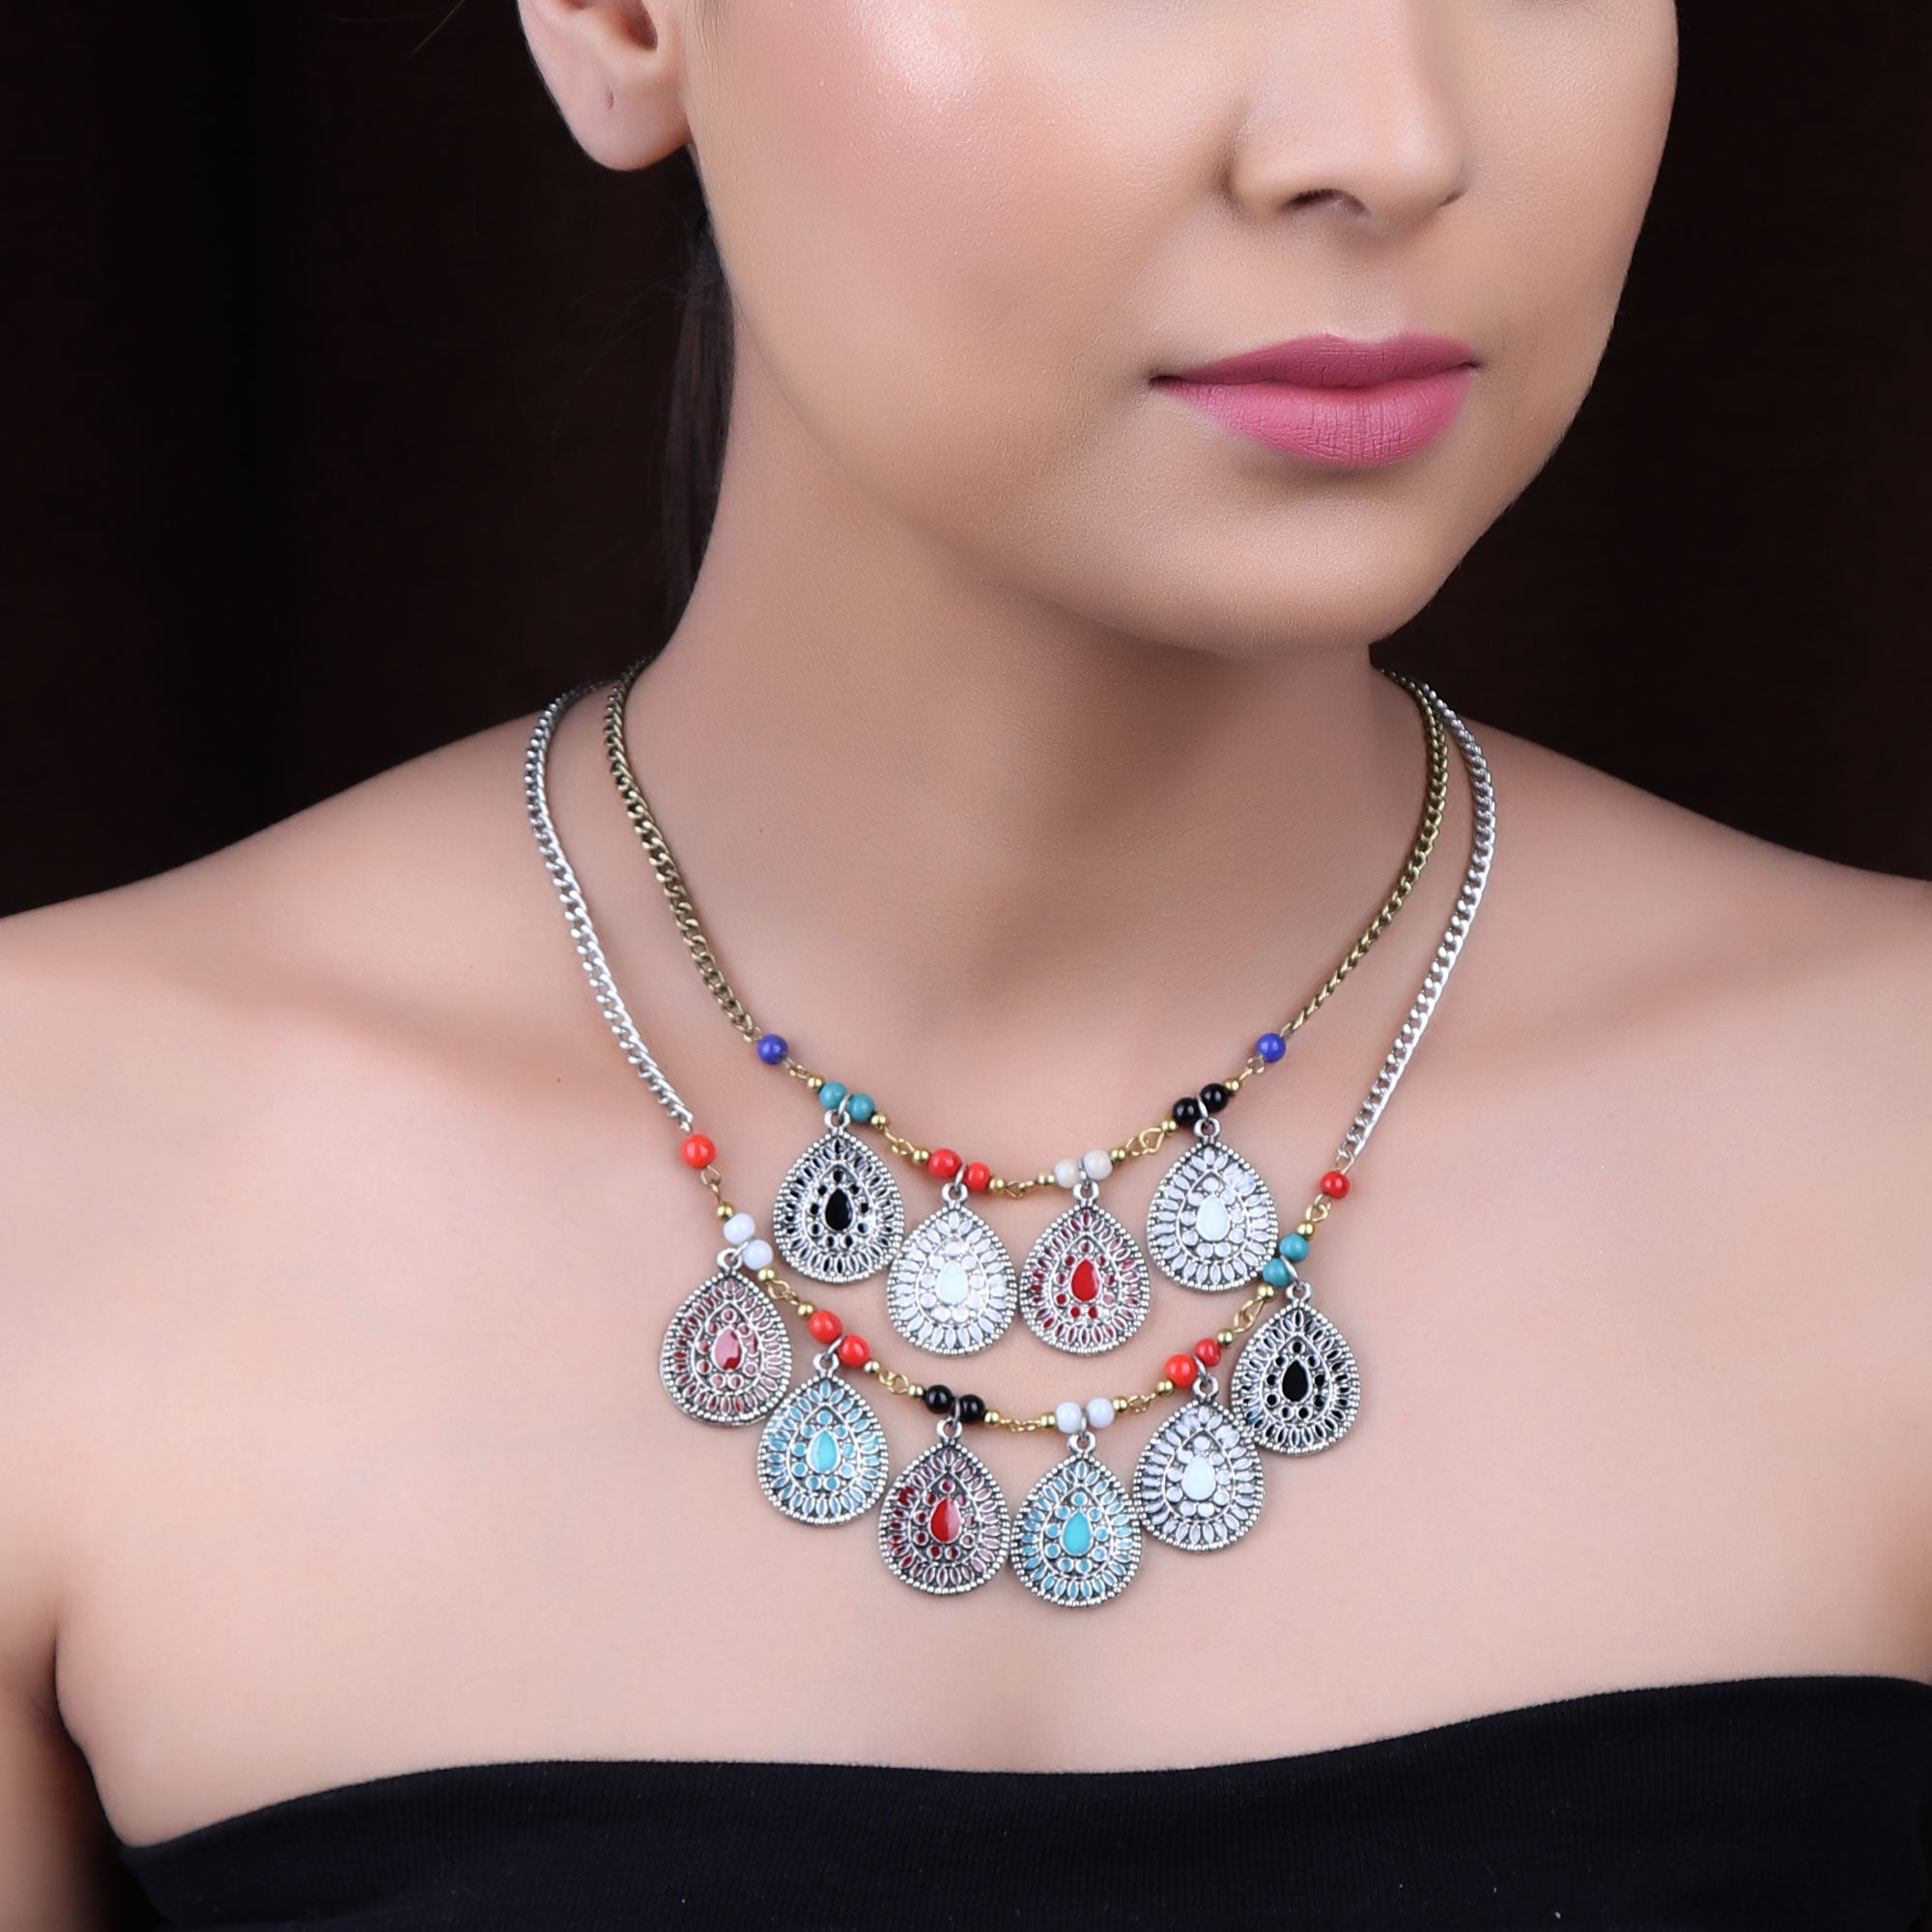 Necklace,The Dual Layered Souvenir Necklace - Cippele Multi Store